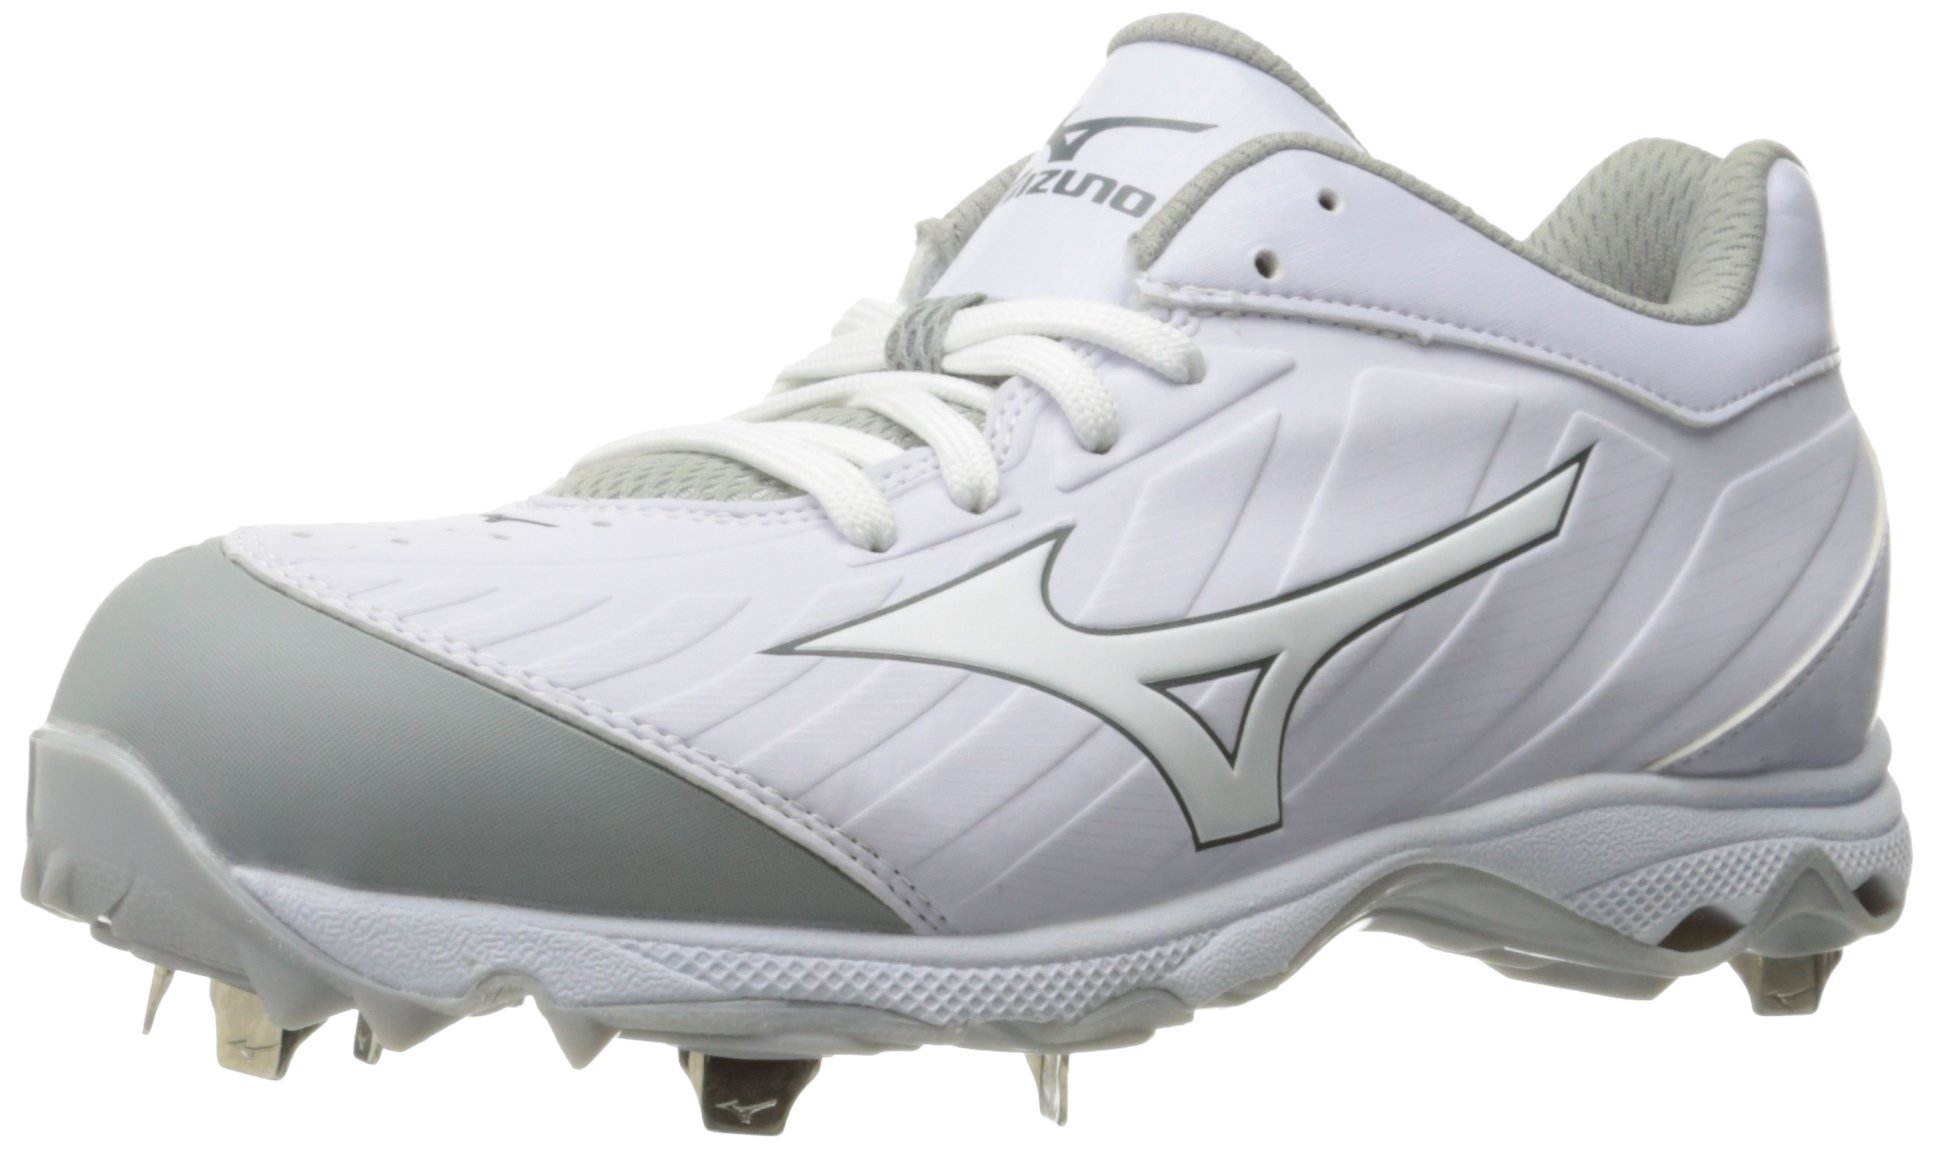 Mizuno Women's 9-Spike Advanced Sweep 3 Softball Shoe, White, 9 D US